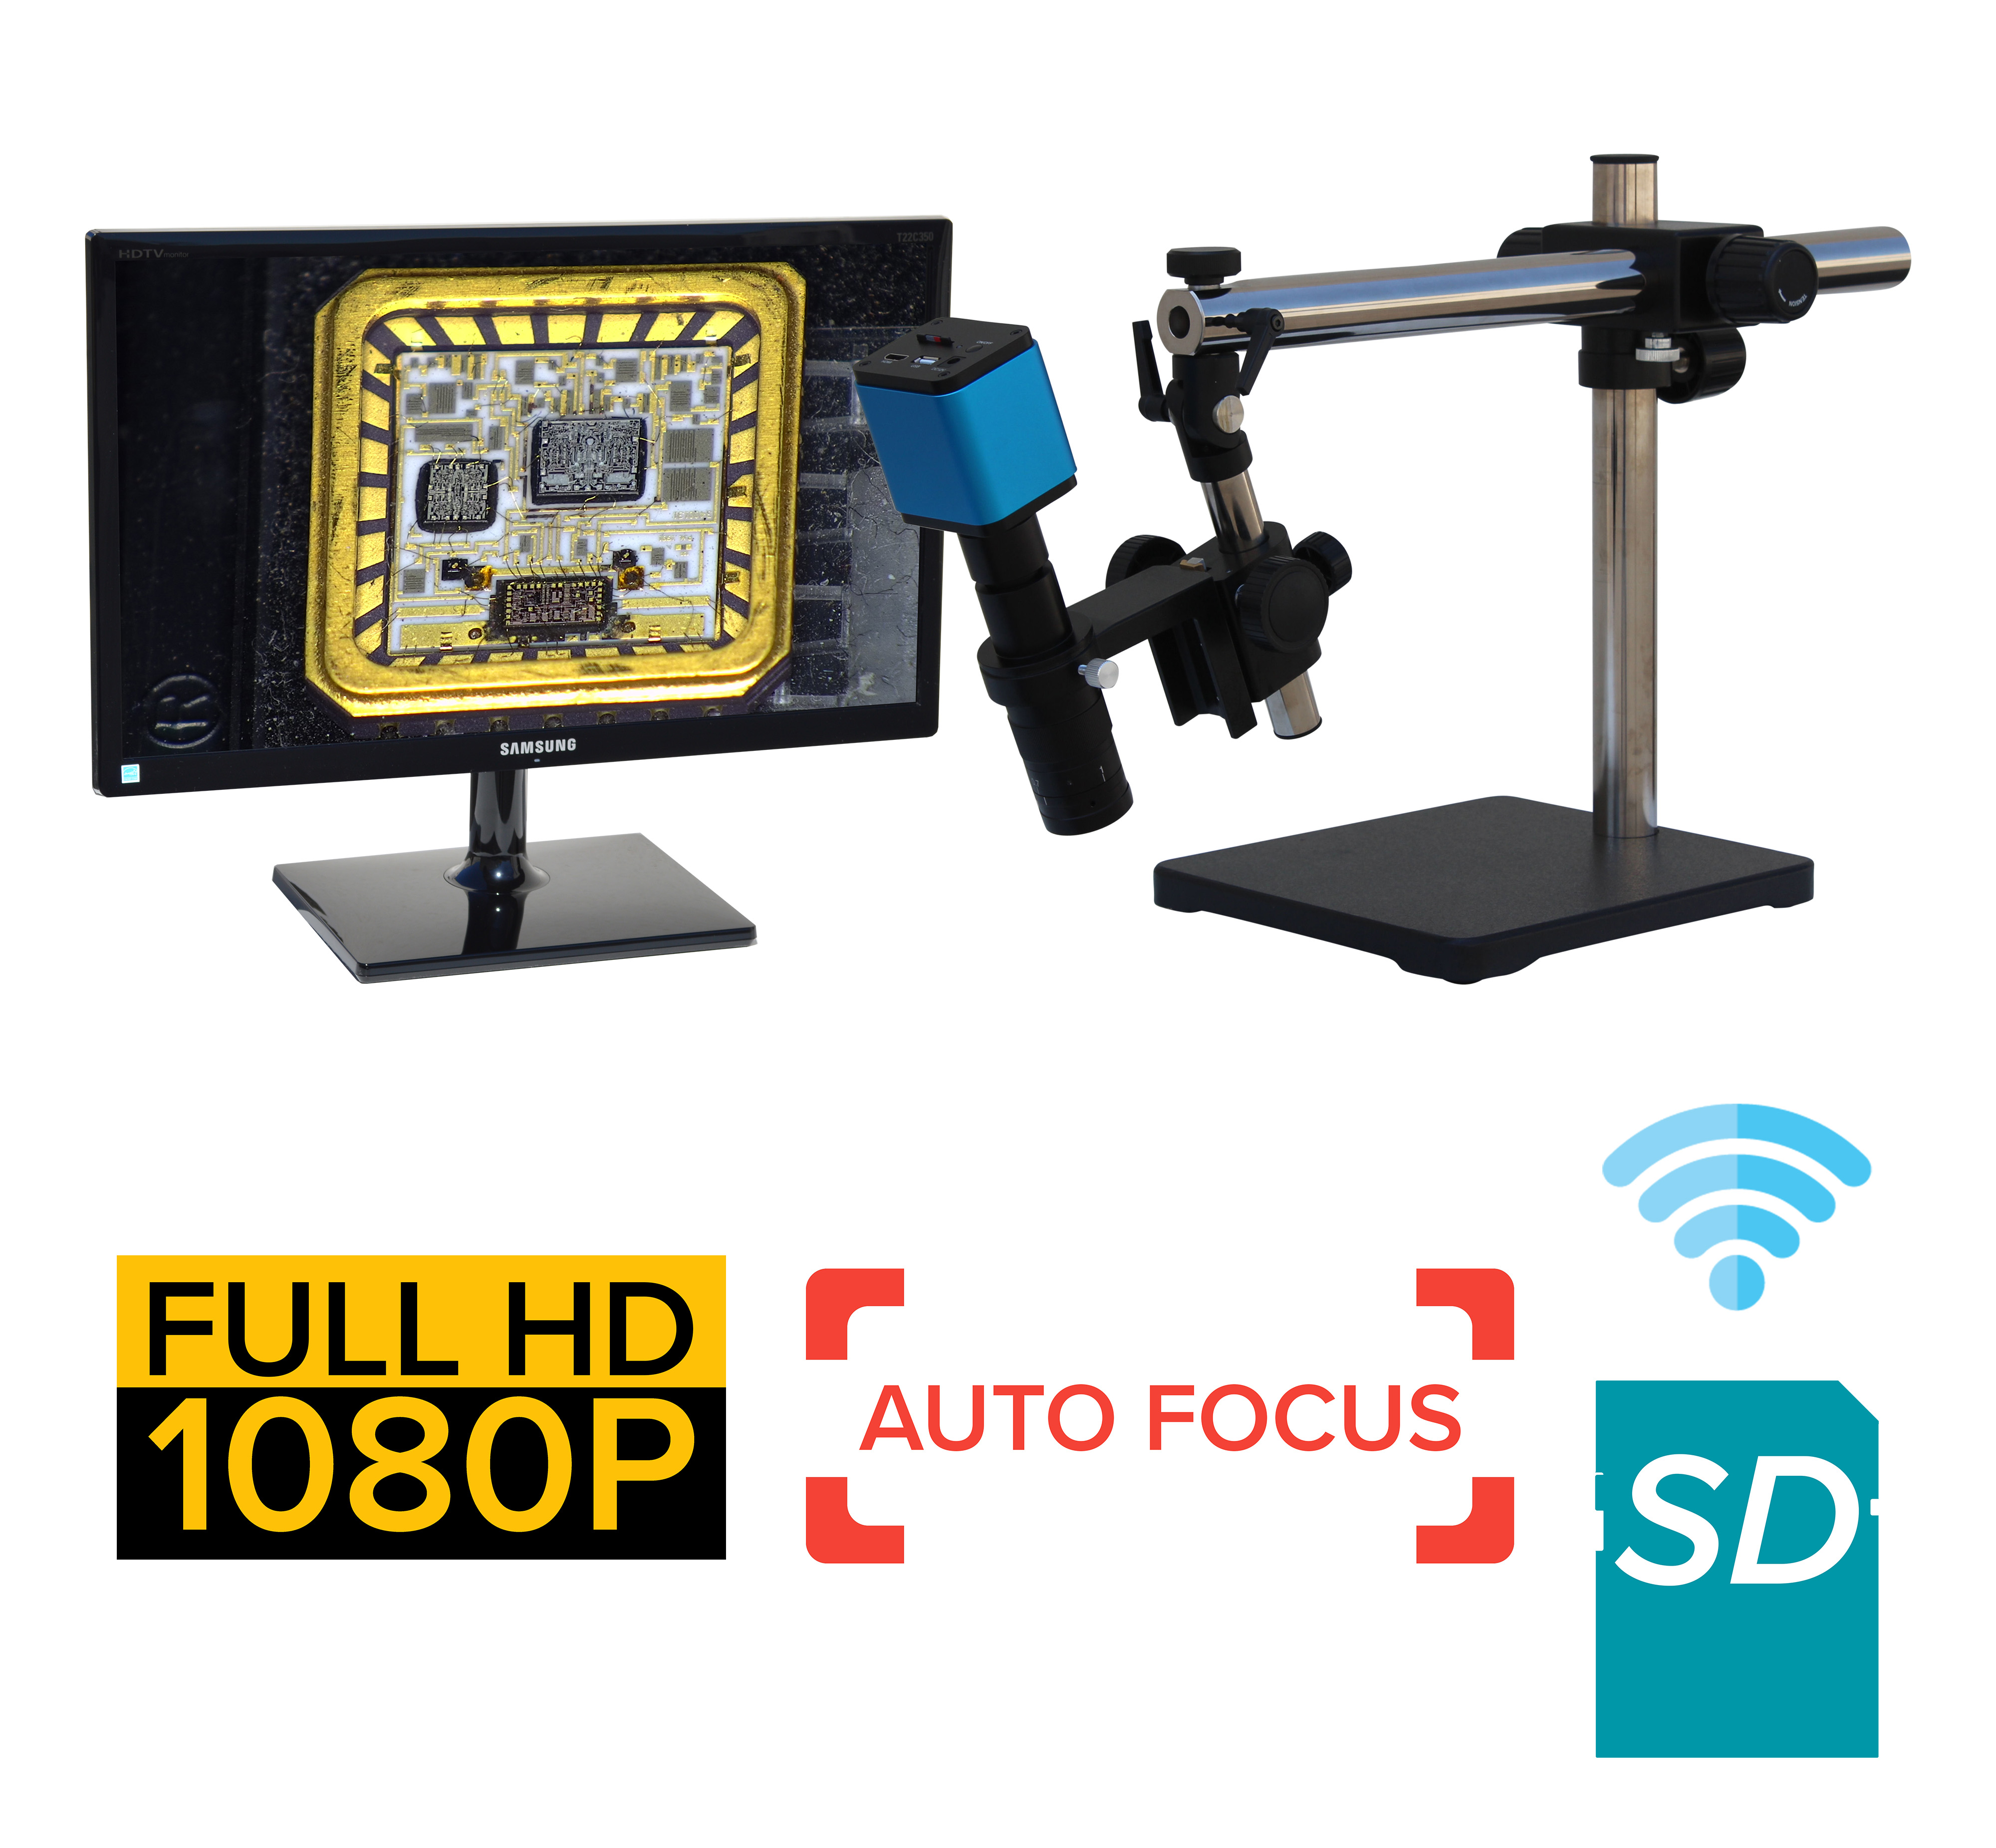 eHDAF205 series standard 24x-160x or possible 12x-320x Auto Focus + Wi-Fi + HD1080p + SD card [Start at $1000]